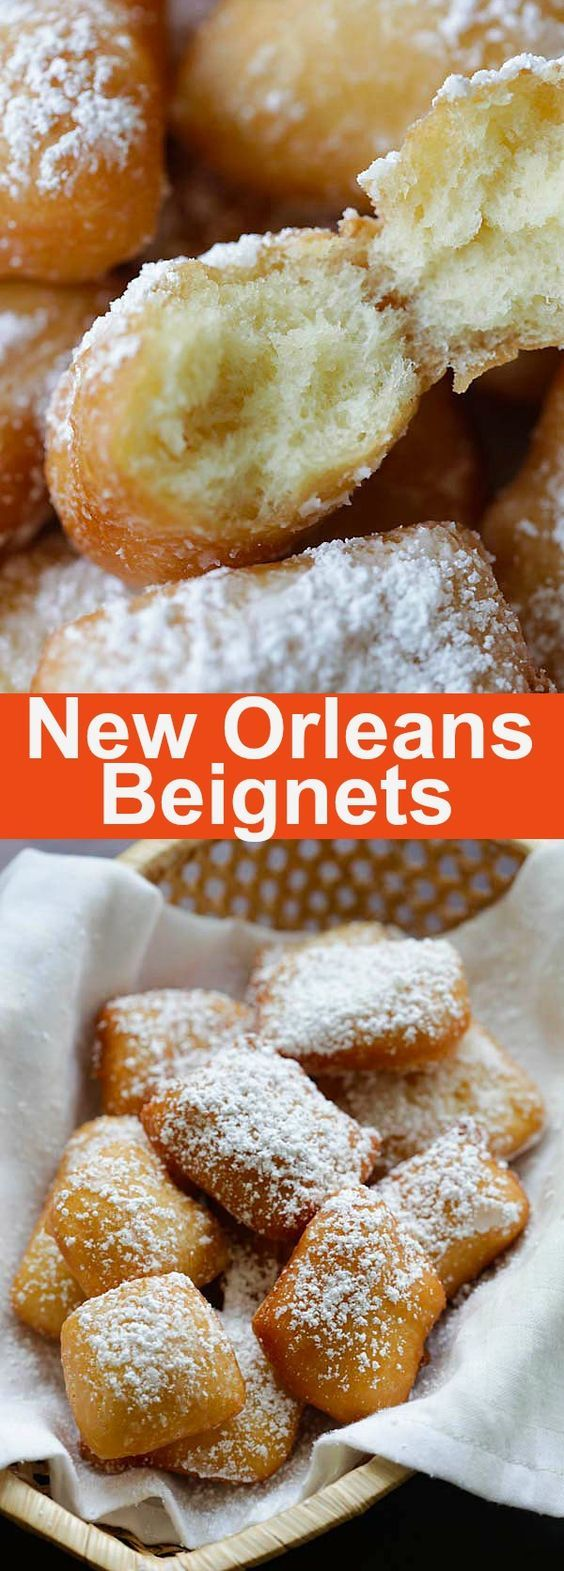 New orleans beignets recipe beignets recipes and food forumfinder Image collections